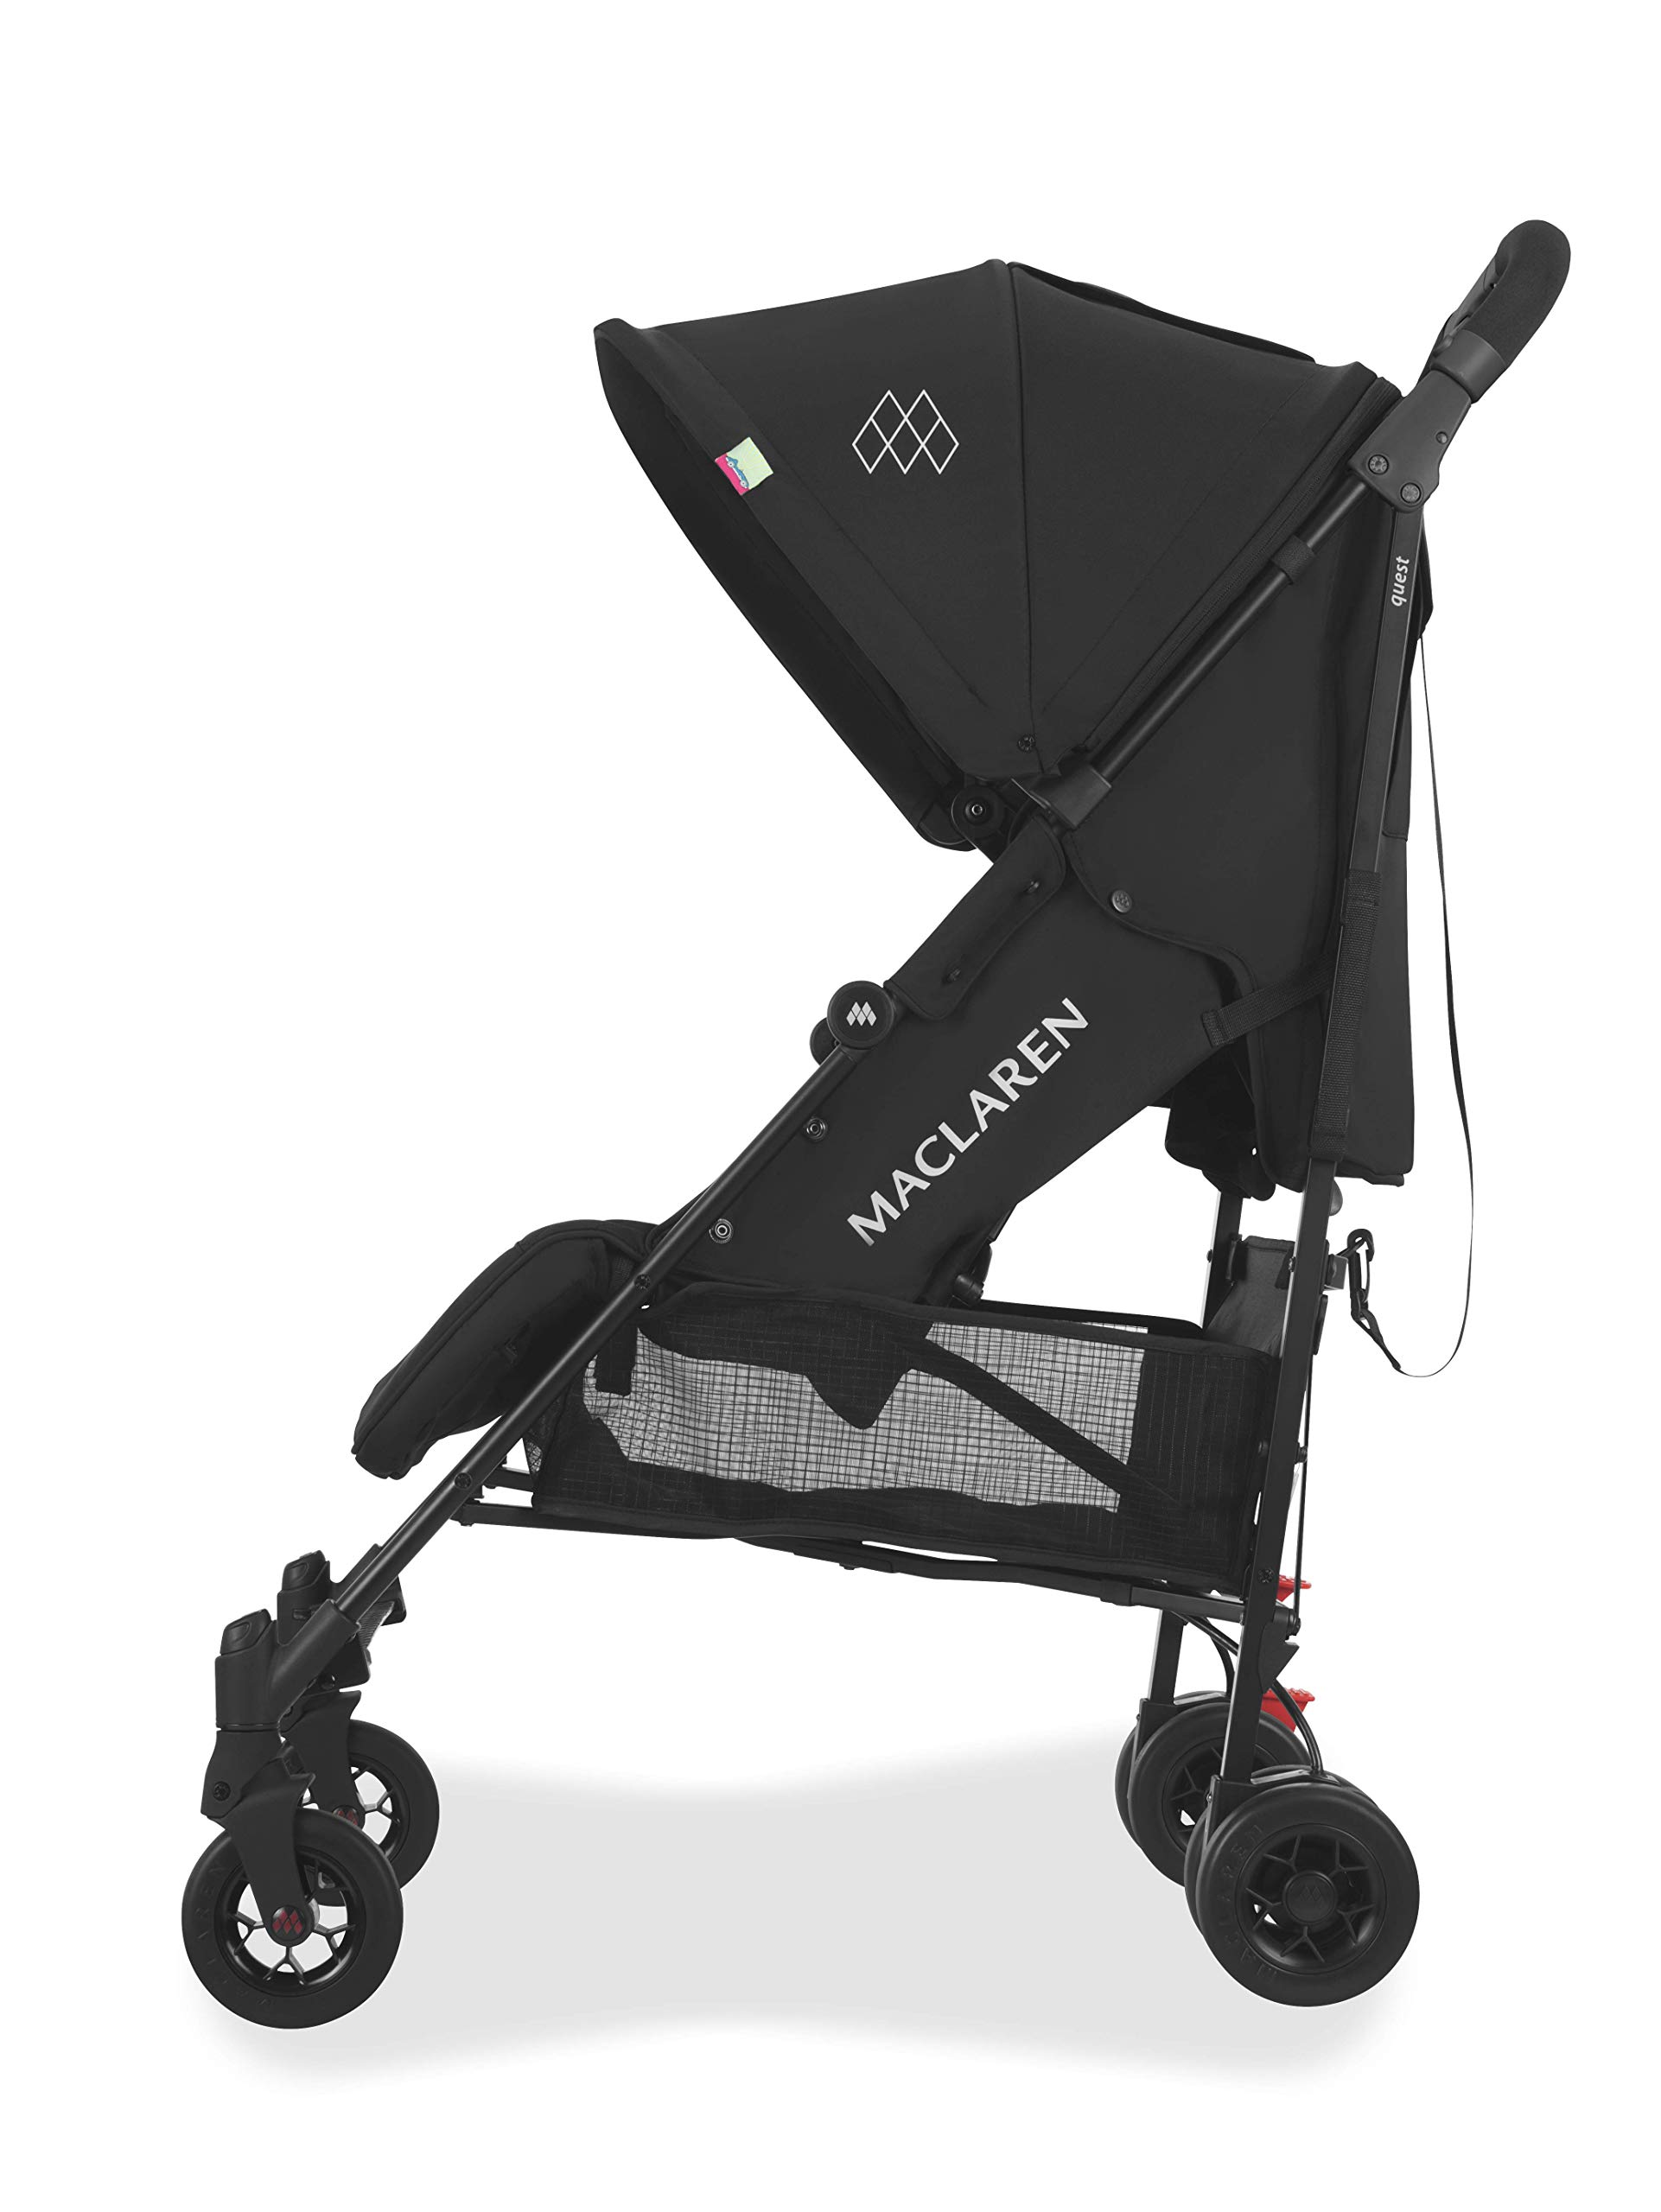 Maclaren Quest Arc Stroller- Ideal for Newborns up to 25kg with extendable UPF 50+/Waterproof Hood, Multi-Position seat and 4-Wheel Suspension. Maclaren Carrycot Compatible. Accessories in The Box Maclaren Lightweight and compact. ideal for newborns and children up to 25kg. you can do it all with one-hand- open, close, push and adjust the seat, footrest and front safety lock Comfy and perfect for travel. the quest arc's padded seat reclines into 4 positions and converts into a new-born safety system. coupled with ultra light flat-free eva tires and all wheel suspension Smart product for active parents. compatible with the maclaren carrycot. all maclaren strollers have waterproof/ upf 50+ hoods to protect from the elements and machine washable seats to keep tidy 2